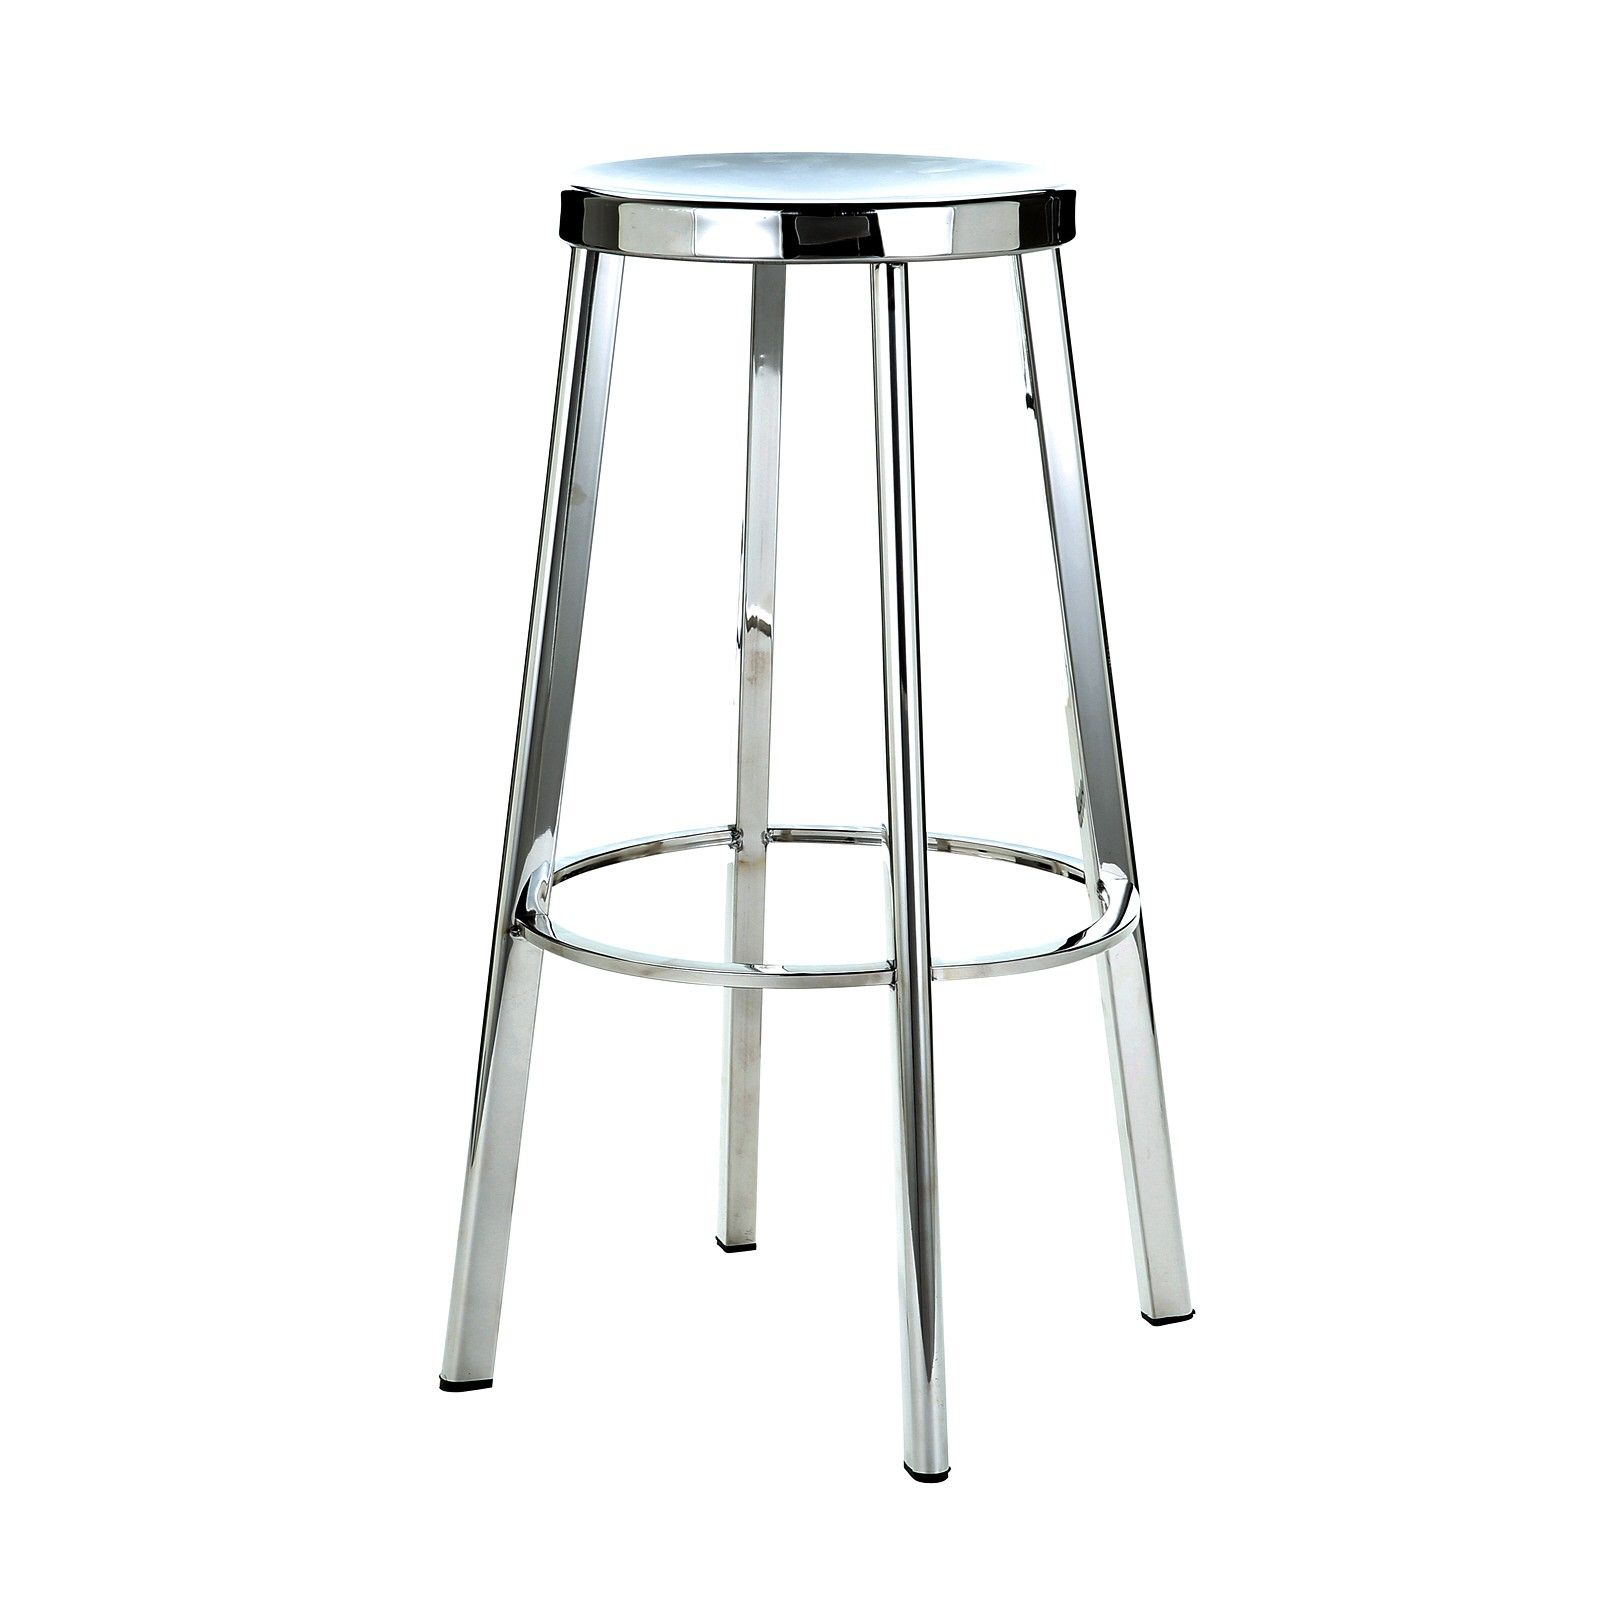 Stainless Steel Bar Chairs. stainless steel bar stool all ...